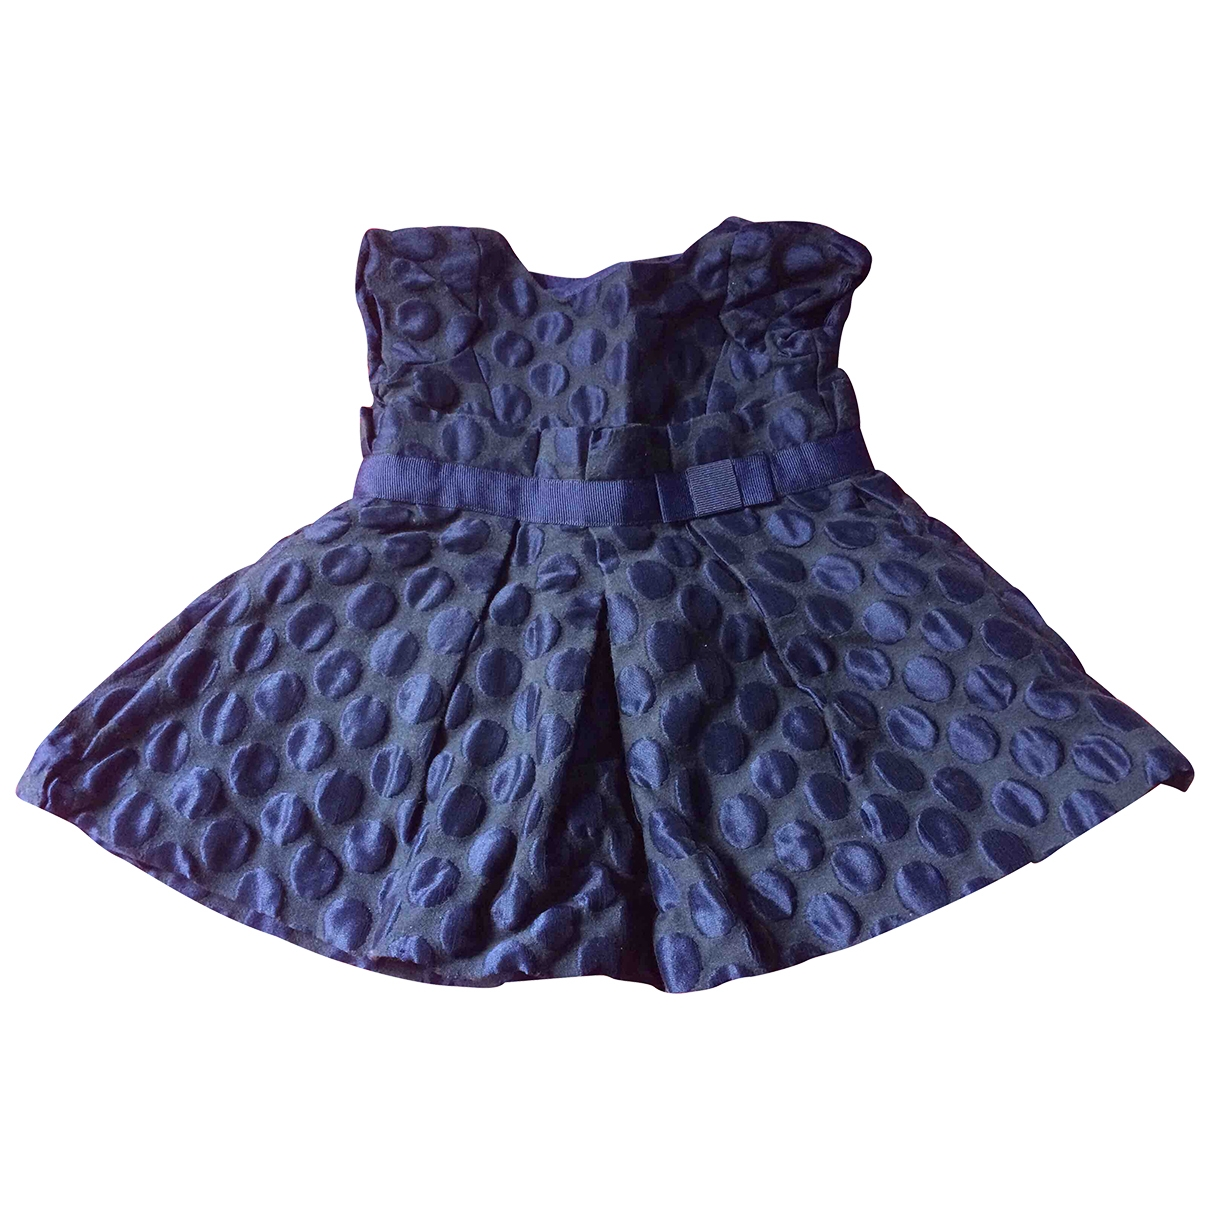 Jacadi \N Navy Cotton dress for Kids 6 months - up to 67cm FR